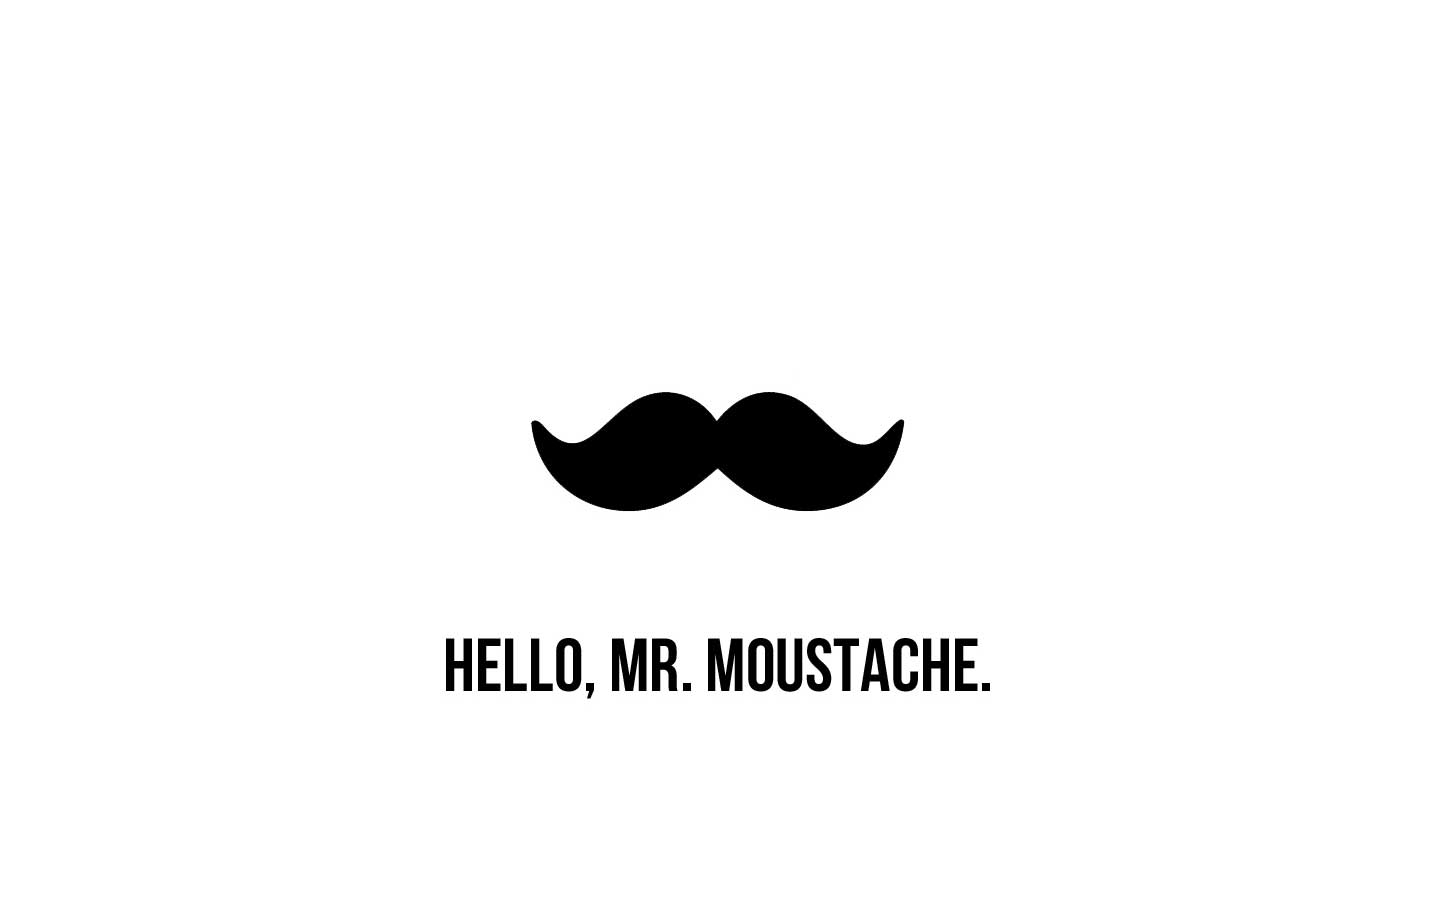 Free Cute Cartoon Wallpapers Wallpaper Mansion Moustache Wallpapers